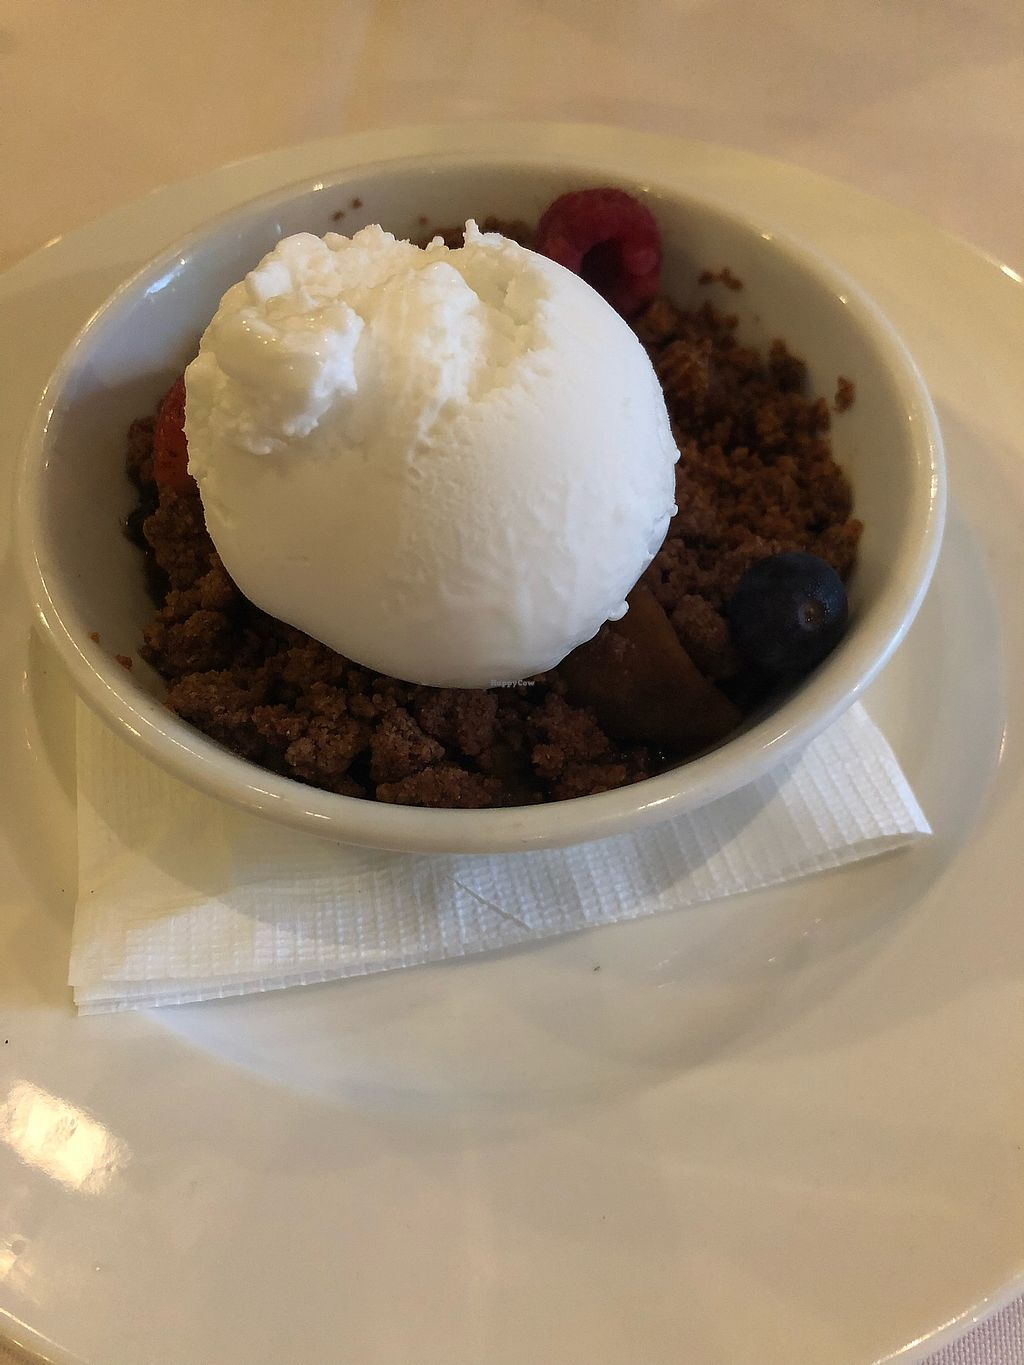 "Photo of Original Sin  by <a href=""/members/profile/AmyLeySzeThoo"">AmyLeySzeThoo</a> <br/>Apple crumble with coconut ice cream <br/> March 22, 2018  - <a href='/contact/abuse/image/221/374106'>Report</a>"